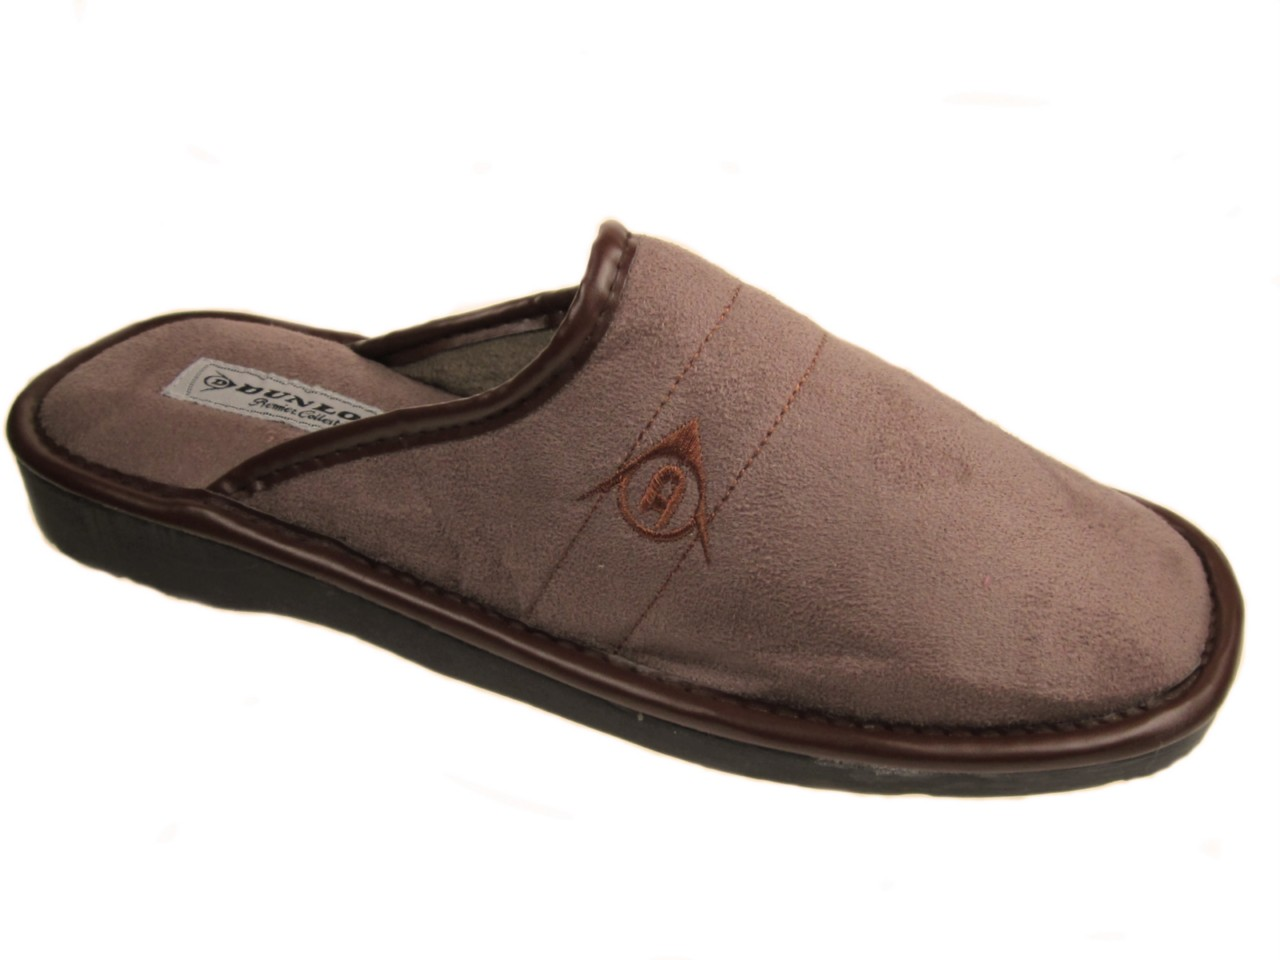 DUNLOP-MENS-MULE-SLIPPERS-BROWN-SIZE-UK-6-12-NEW